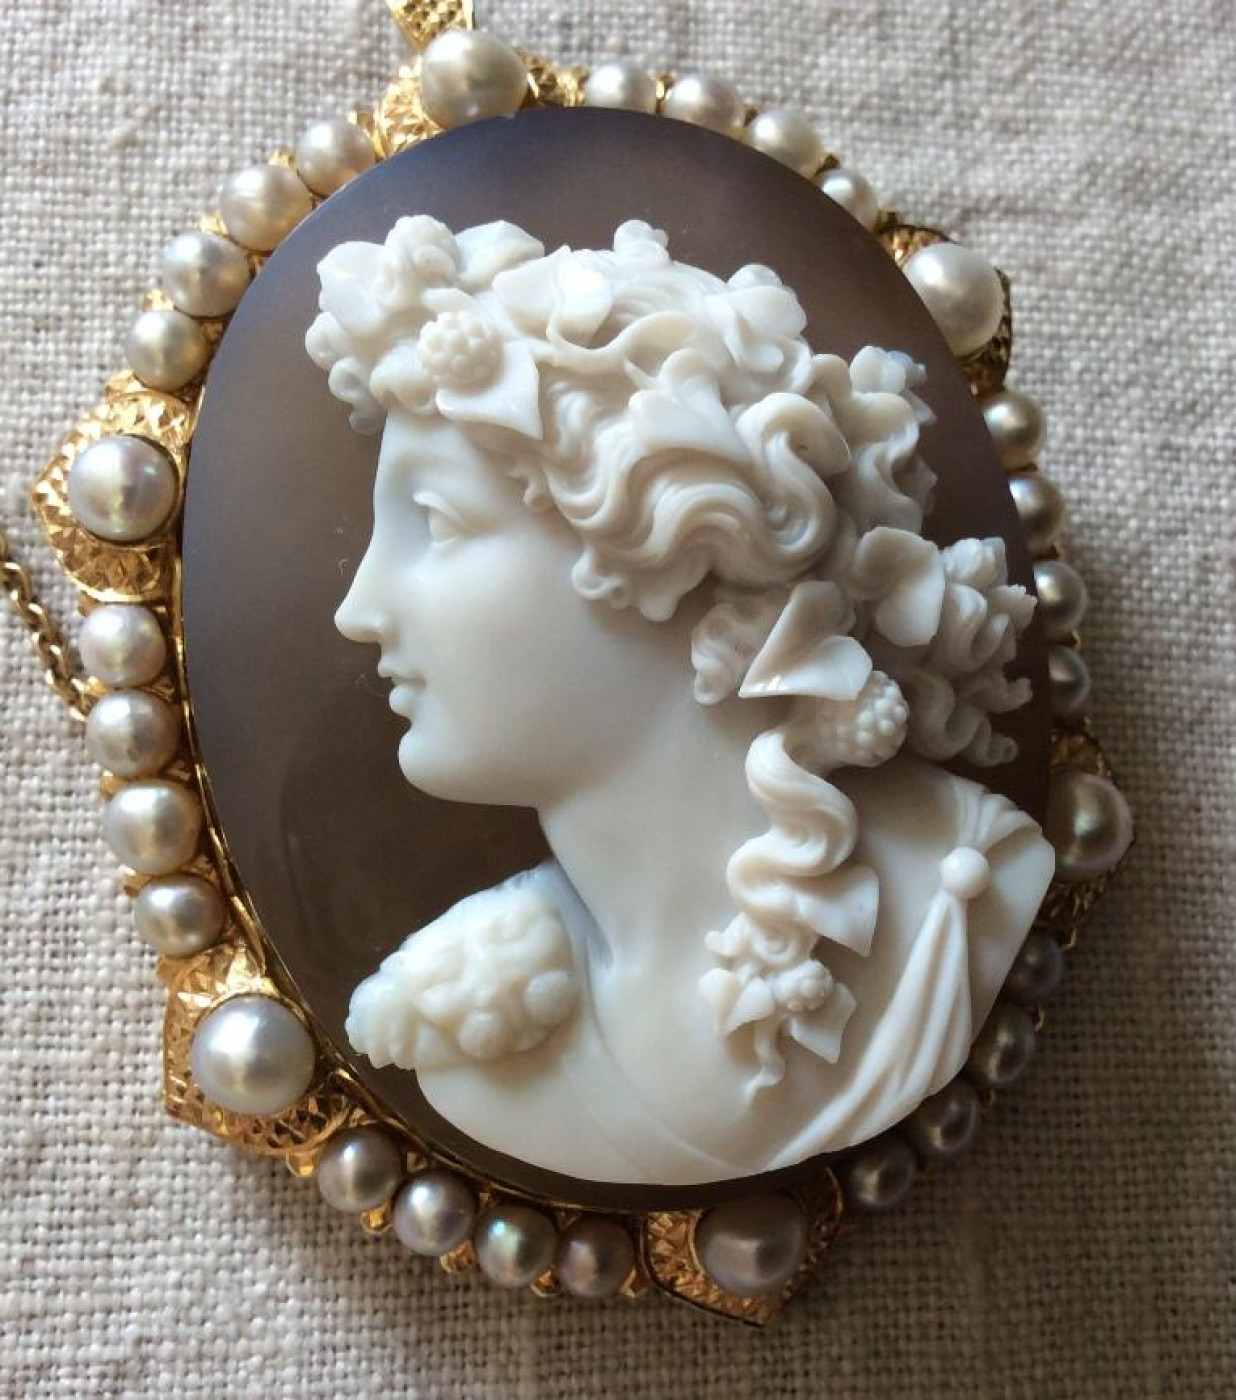 Outstanding Hard Stone Cameo of a Bacchante